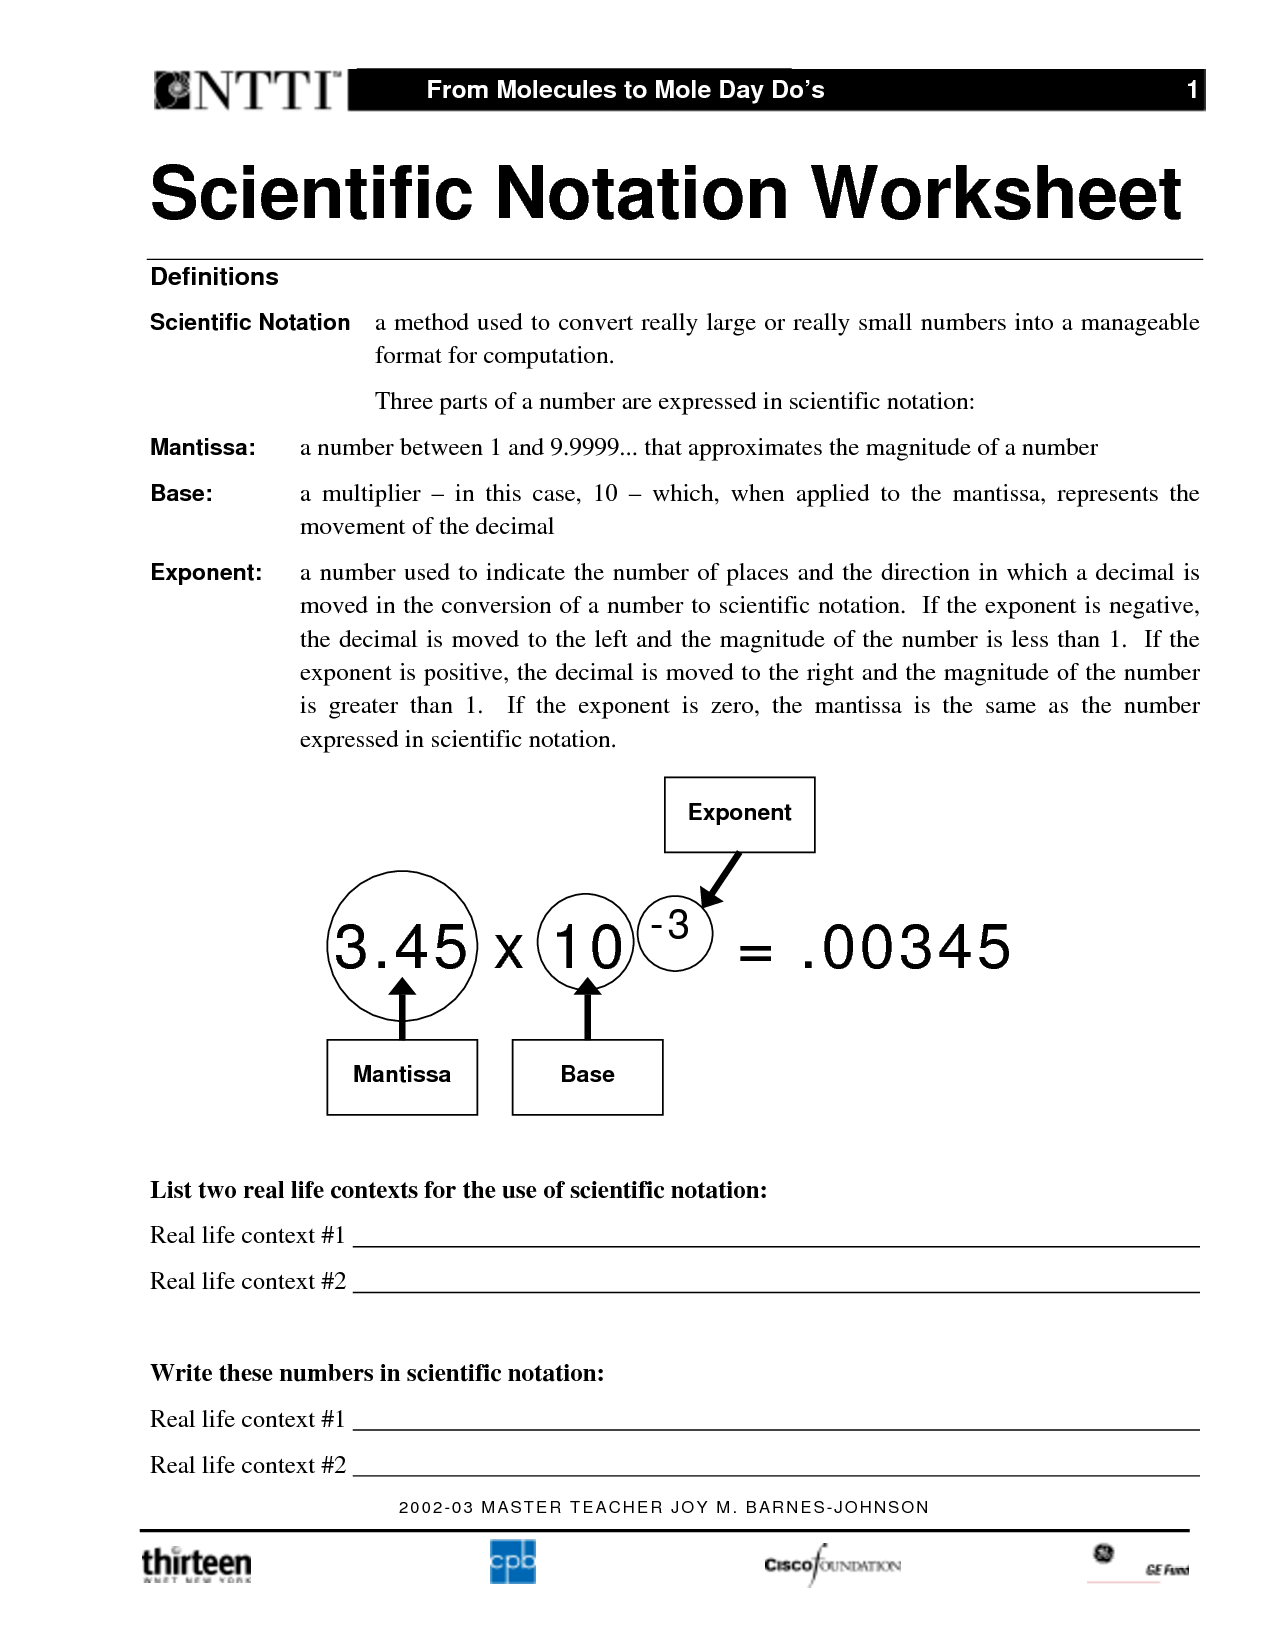 Scientific Notation Operations Worksheets Free  scientific notation worksheetsscientific